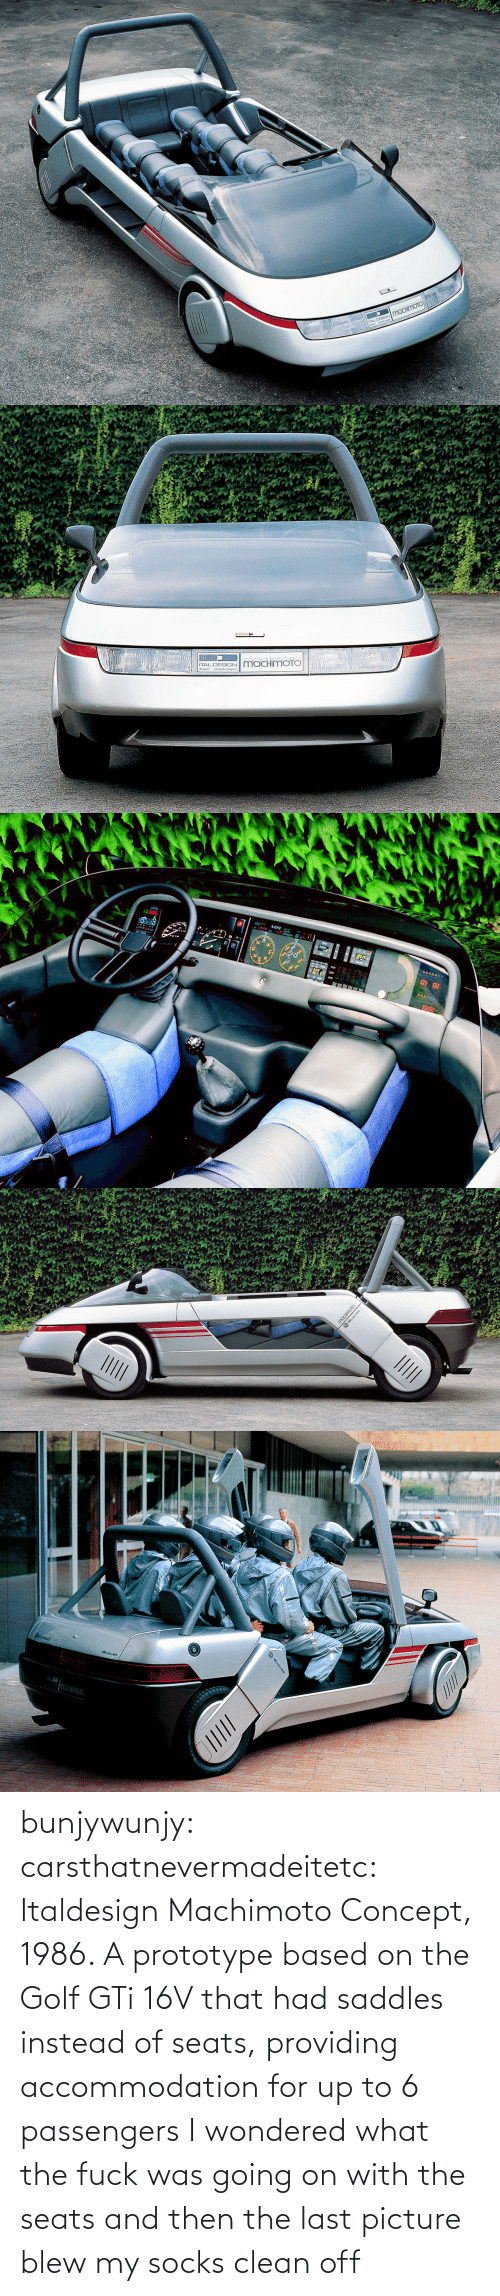 Blew: bunjywunjy:  carsthatnevermadeitetc:  Italdesign Machimoto Concept, 1986. A prototype based on the Golf GTi 16V that had saddles instead of seats, providing accommodation for up to 6 passengers   I wondered what the fuck was going on with the seats and then the last picture blew my socks clean off